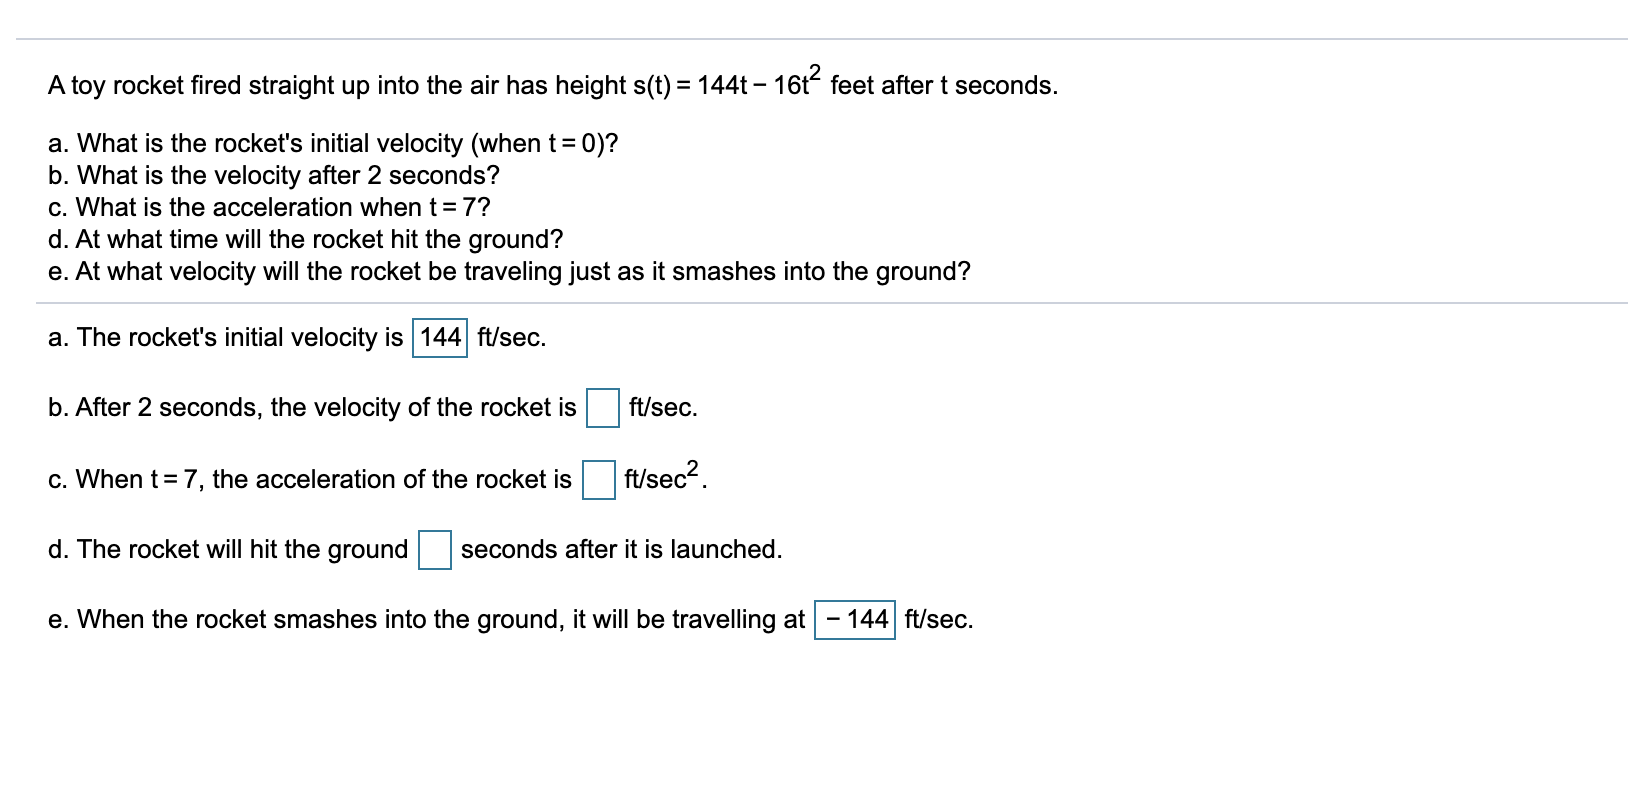 A toy rocket fired straight up into the air has height s(t) = 144t - 16t feet after t seconds. a. What is the rockets initia